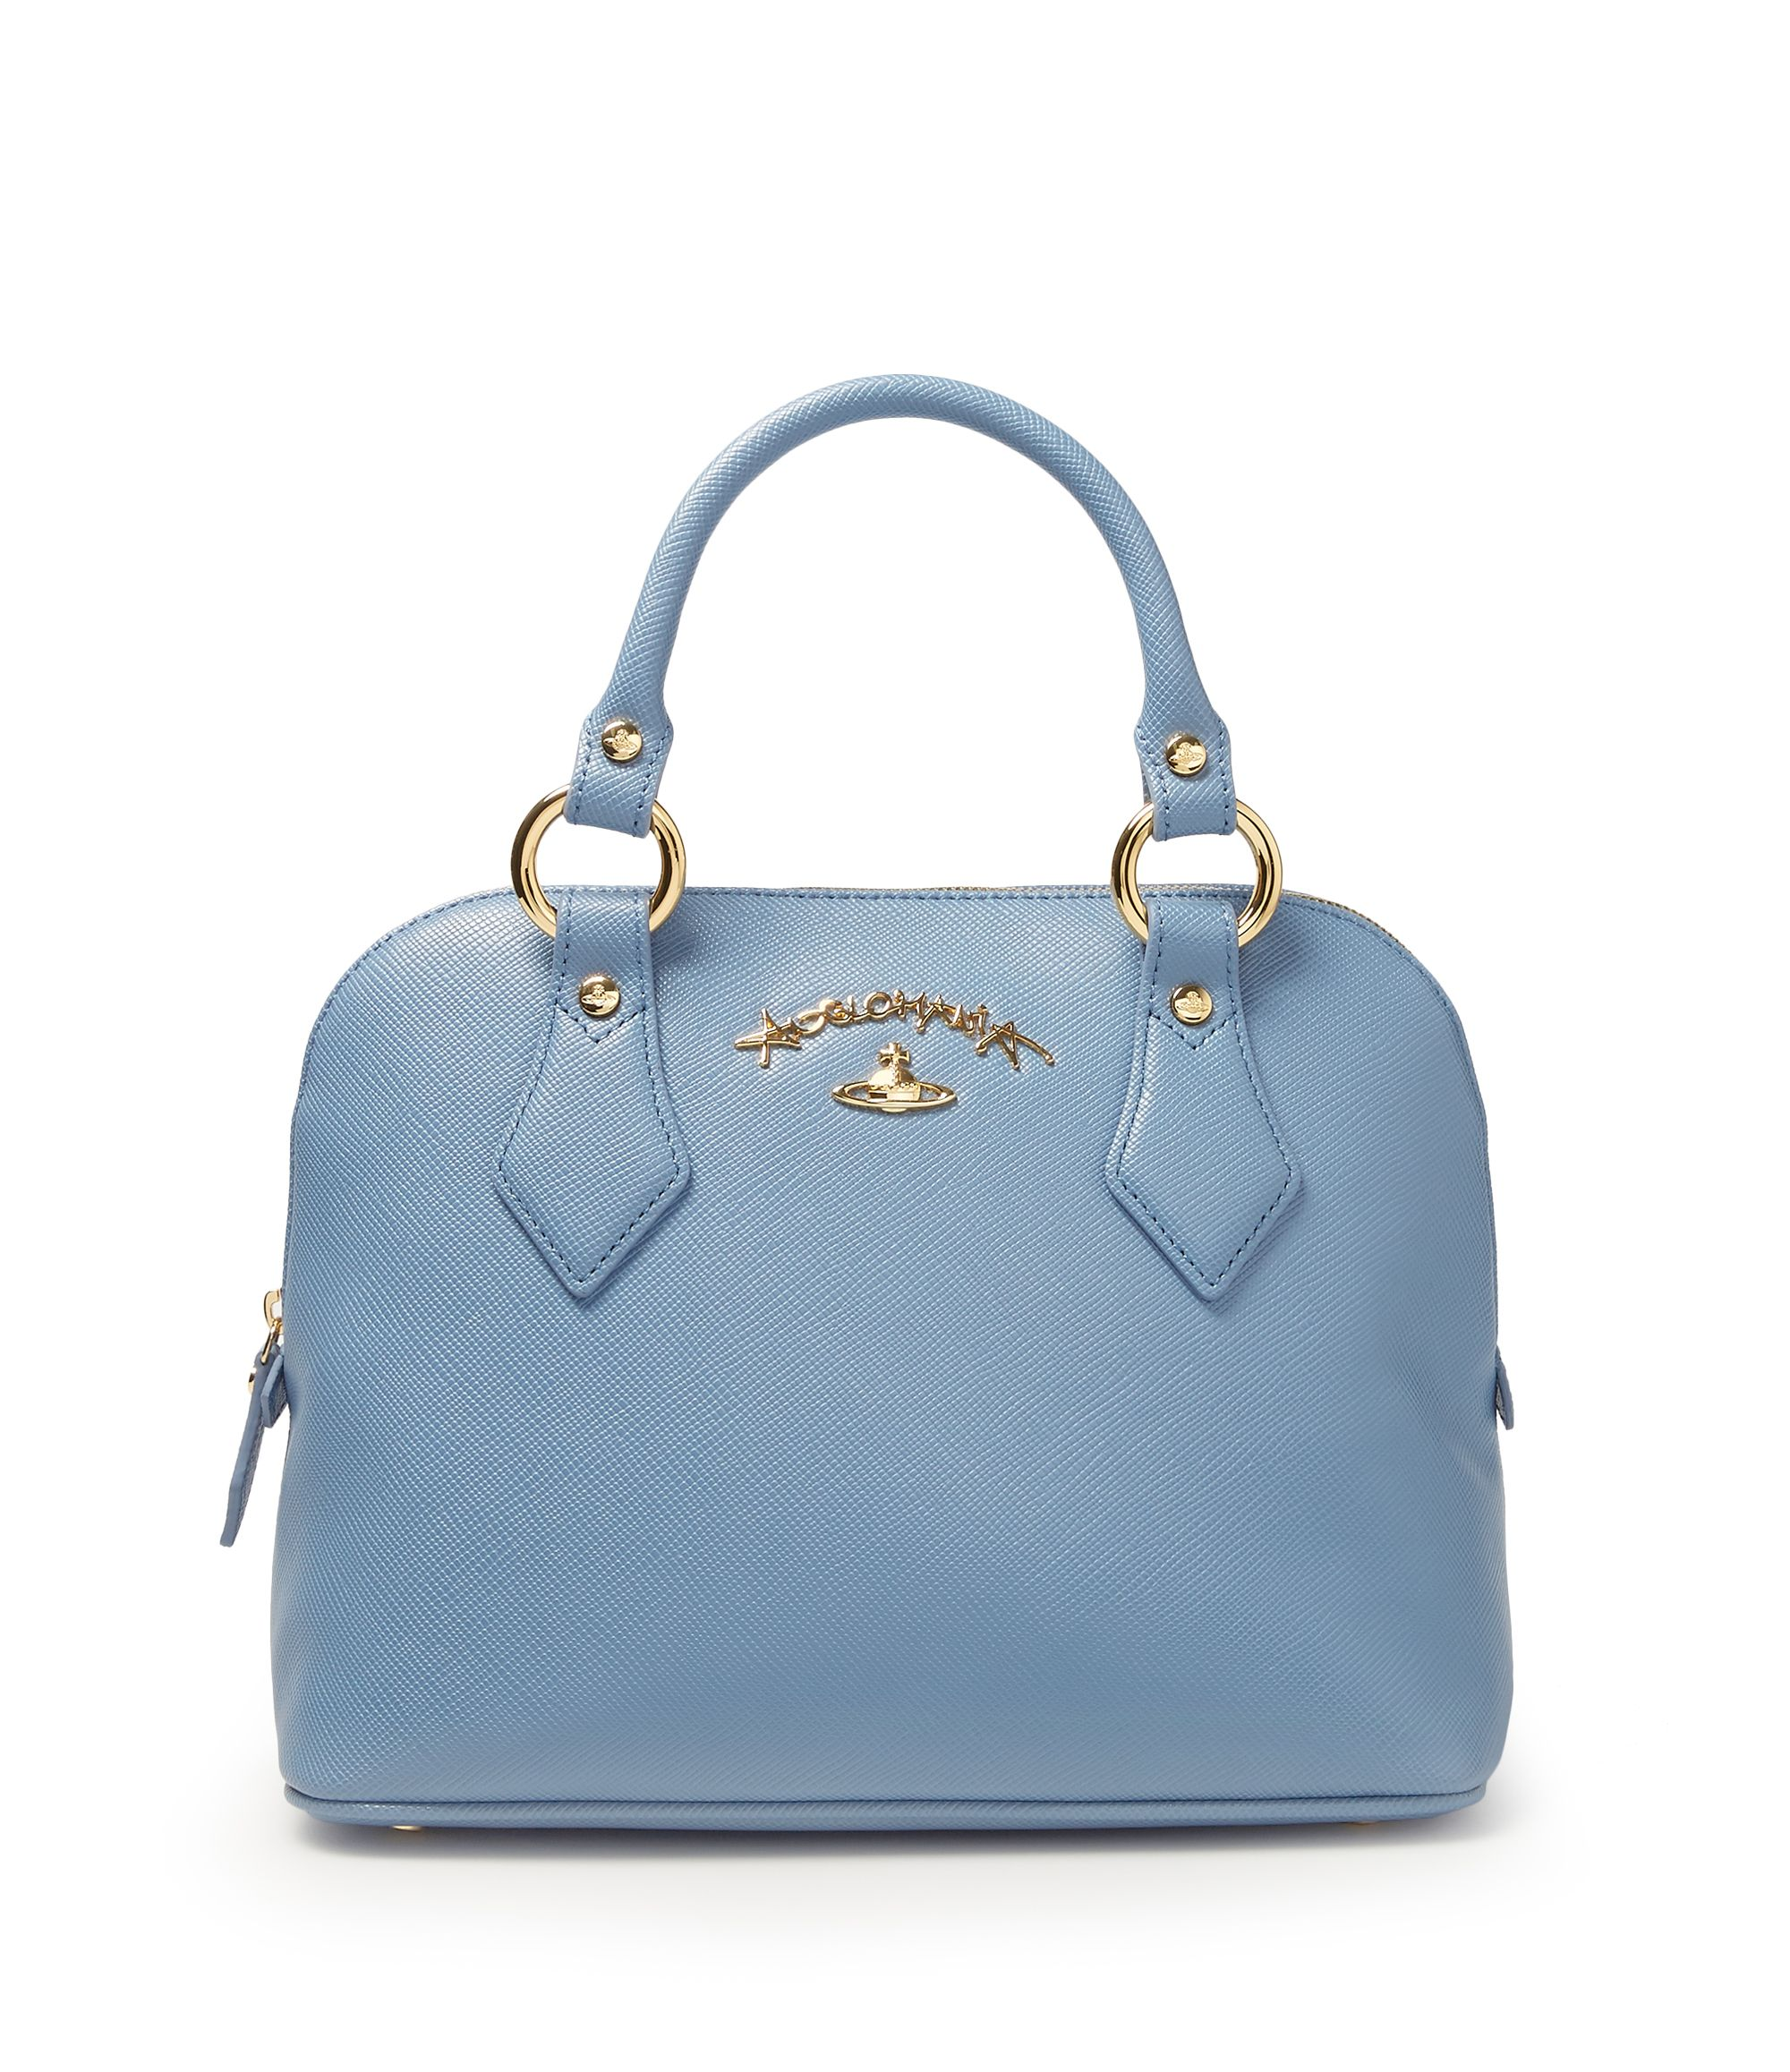 c7bc466d6a04 VIVIENNE WESTWOOD Divina Bag 7281 Blue.  viviennewestwood  bags  shoulder  bags  leather